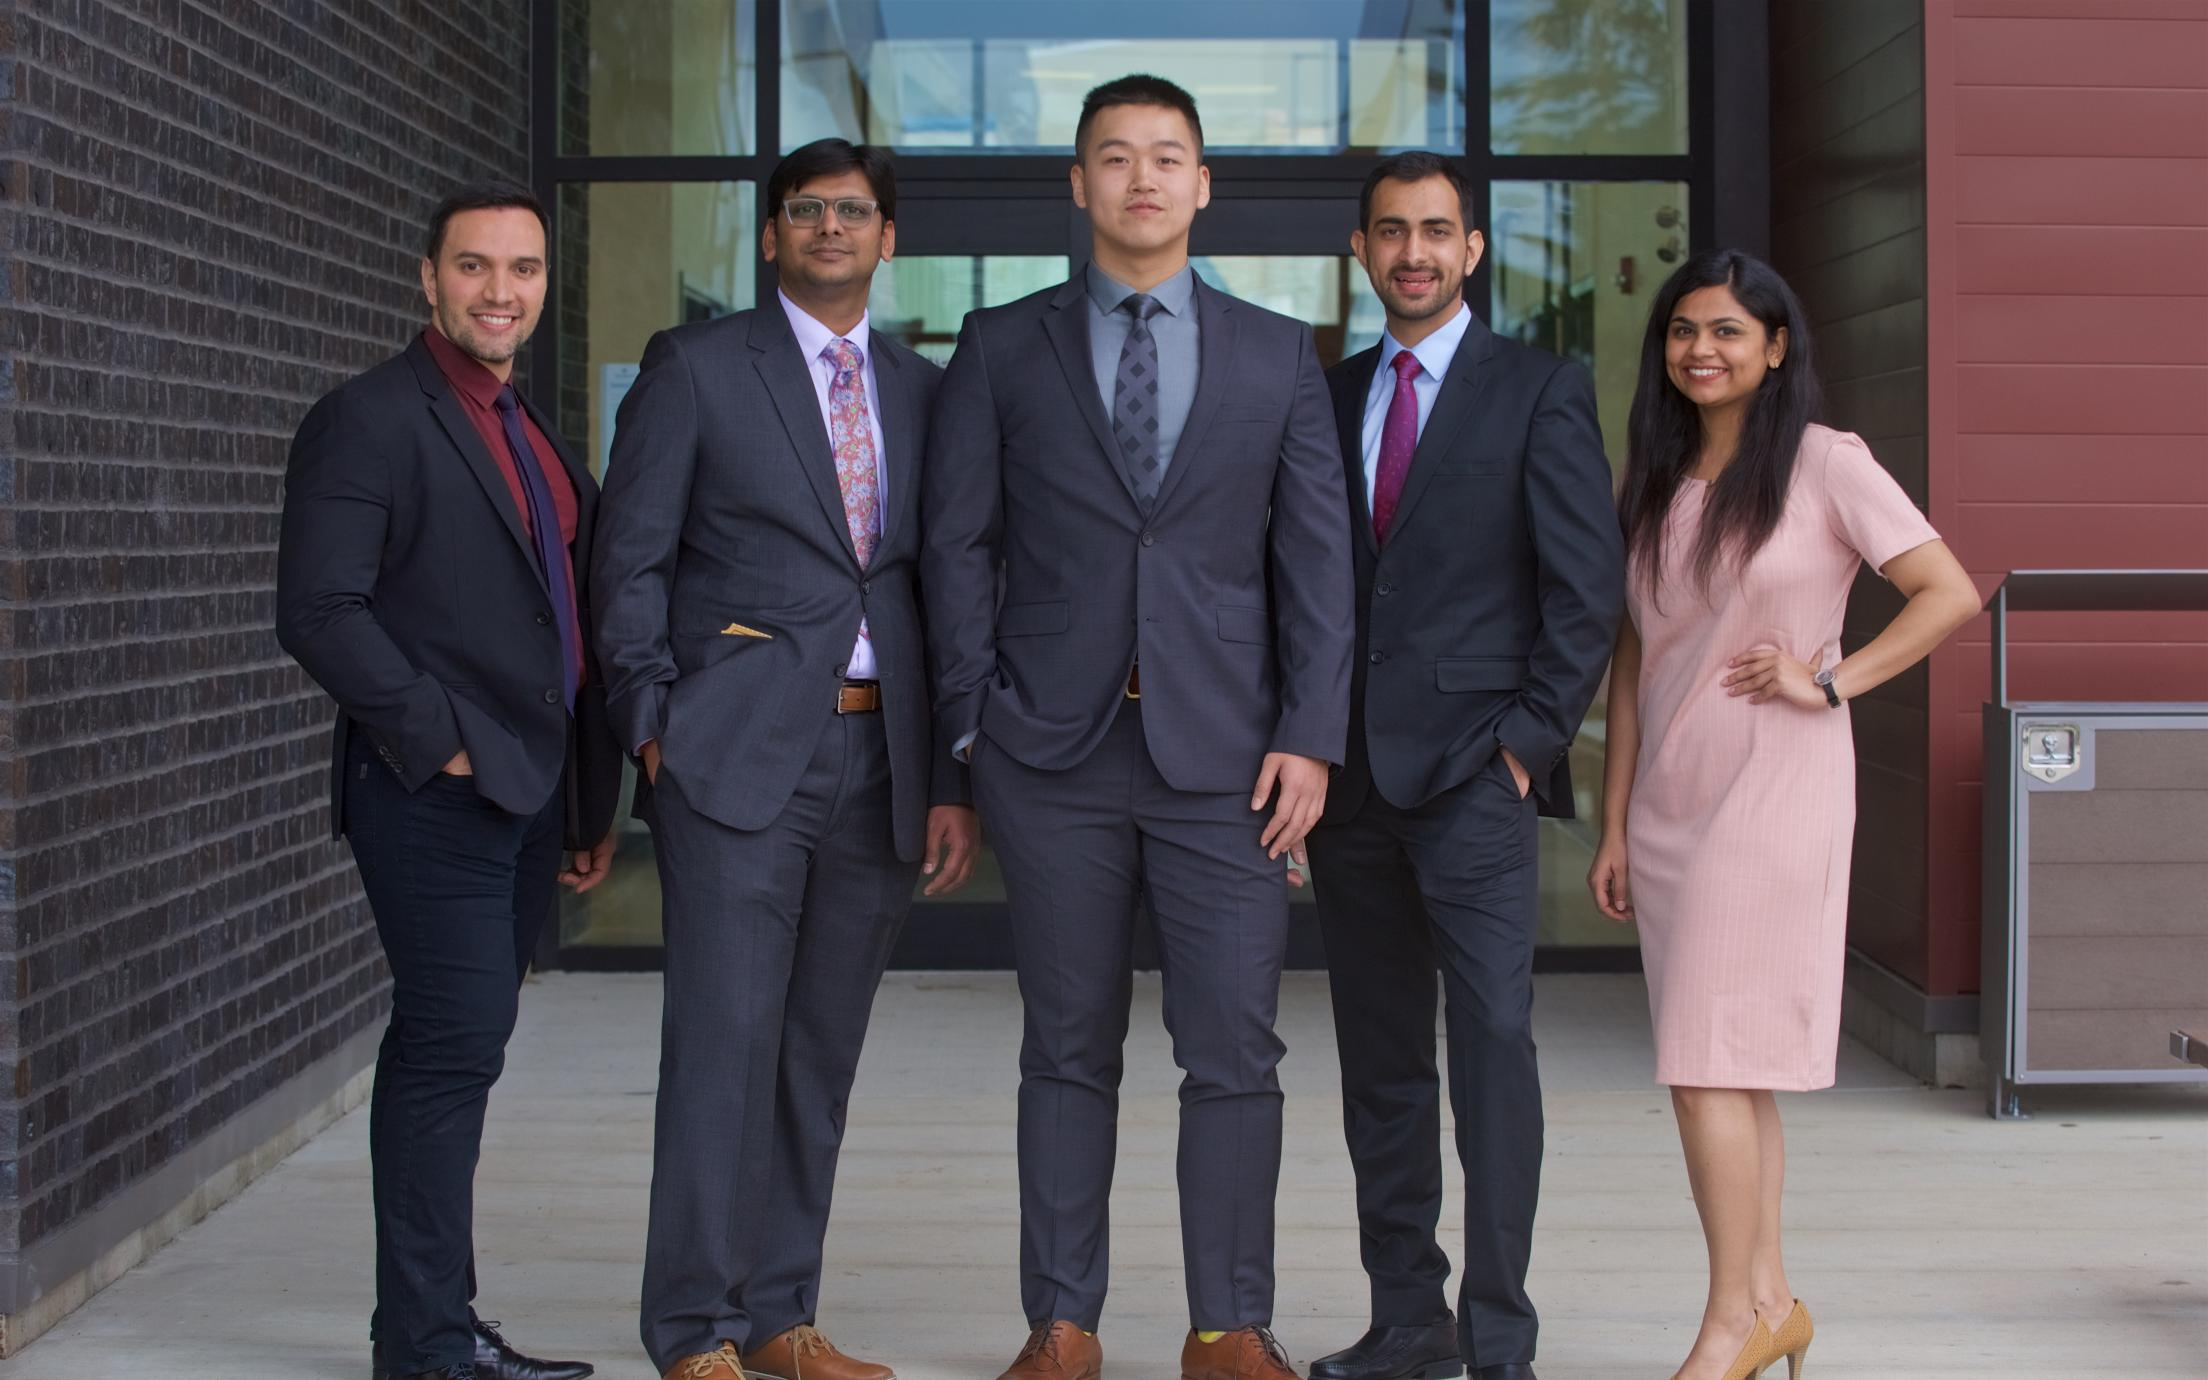 A group of MBA students in business attire poseing for a picture